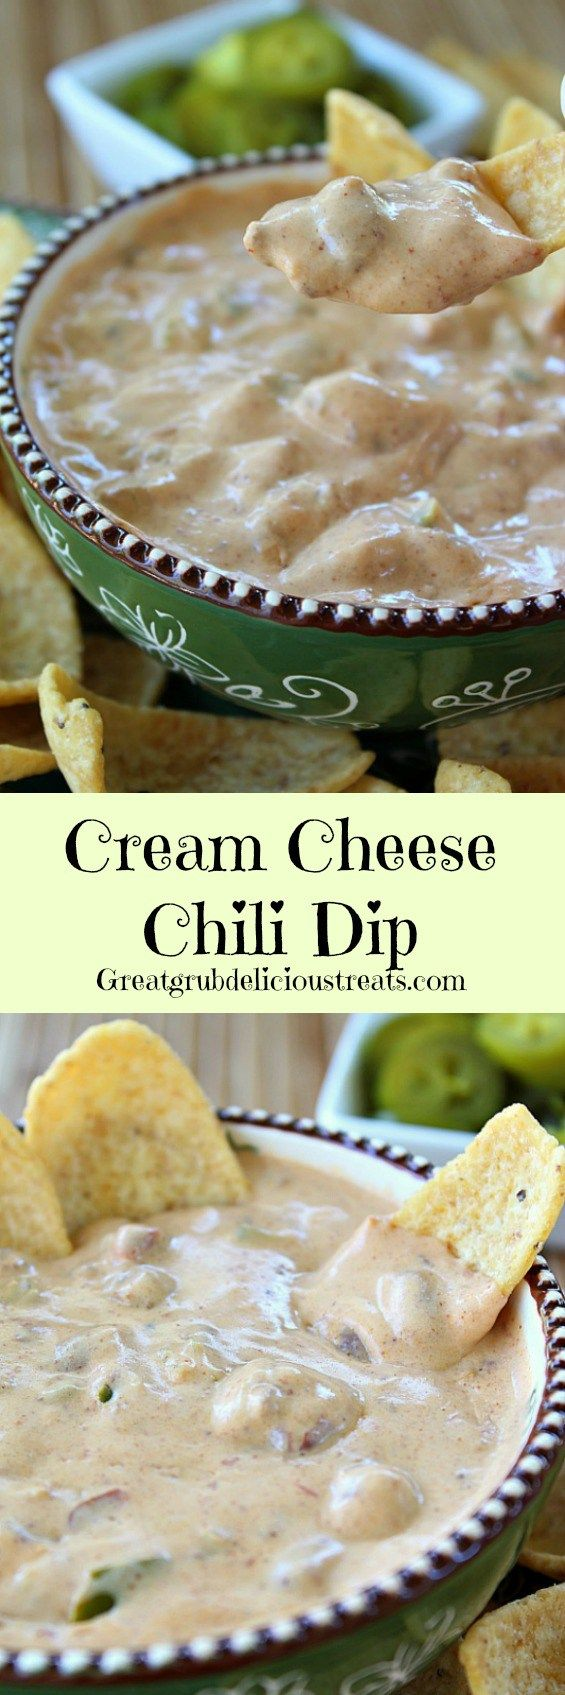 Cream Cheese Chili Dip ~ Just 3 ingredients and you have a delicious tasting, super quick appetizer!